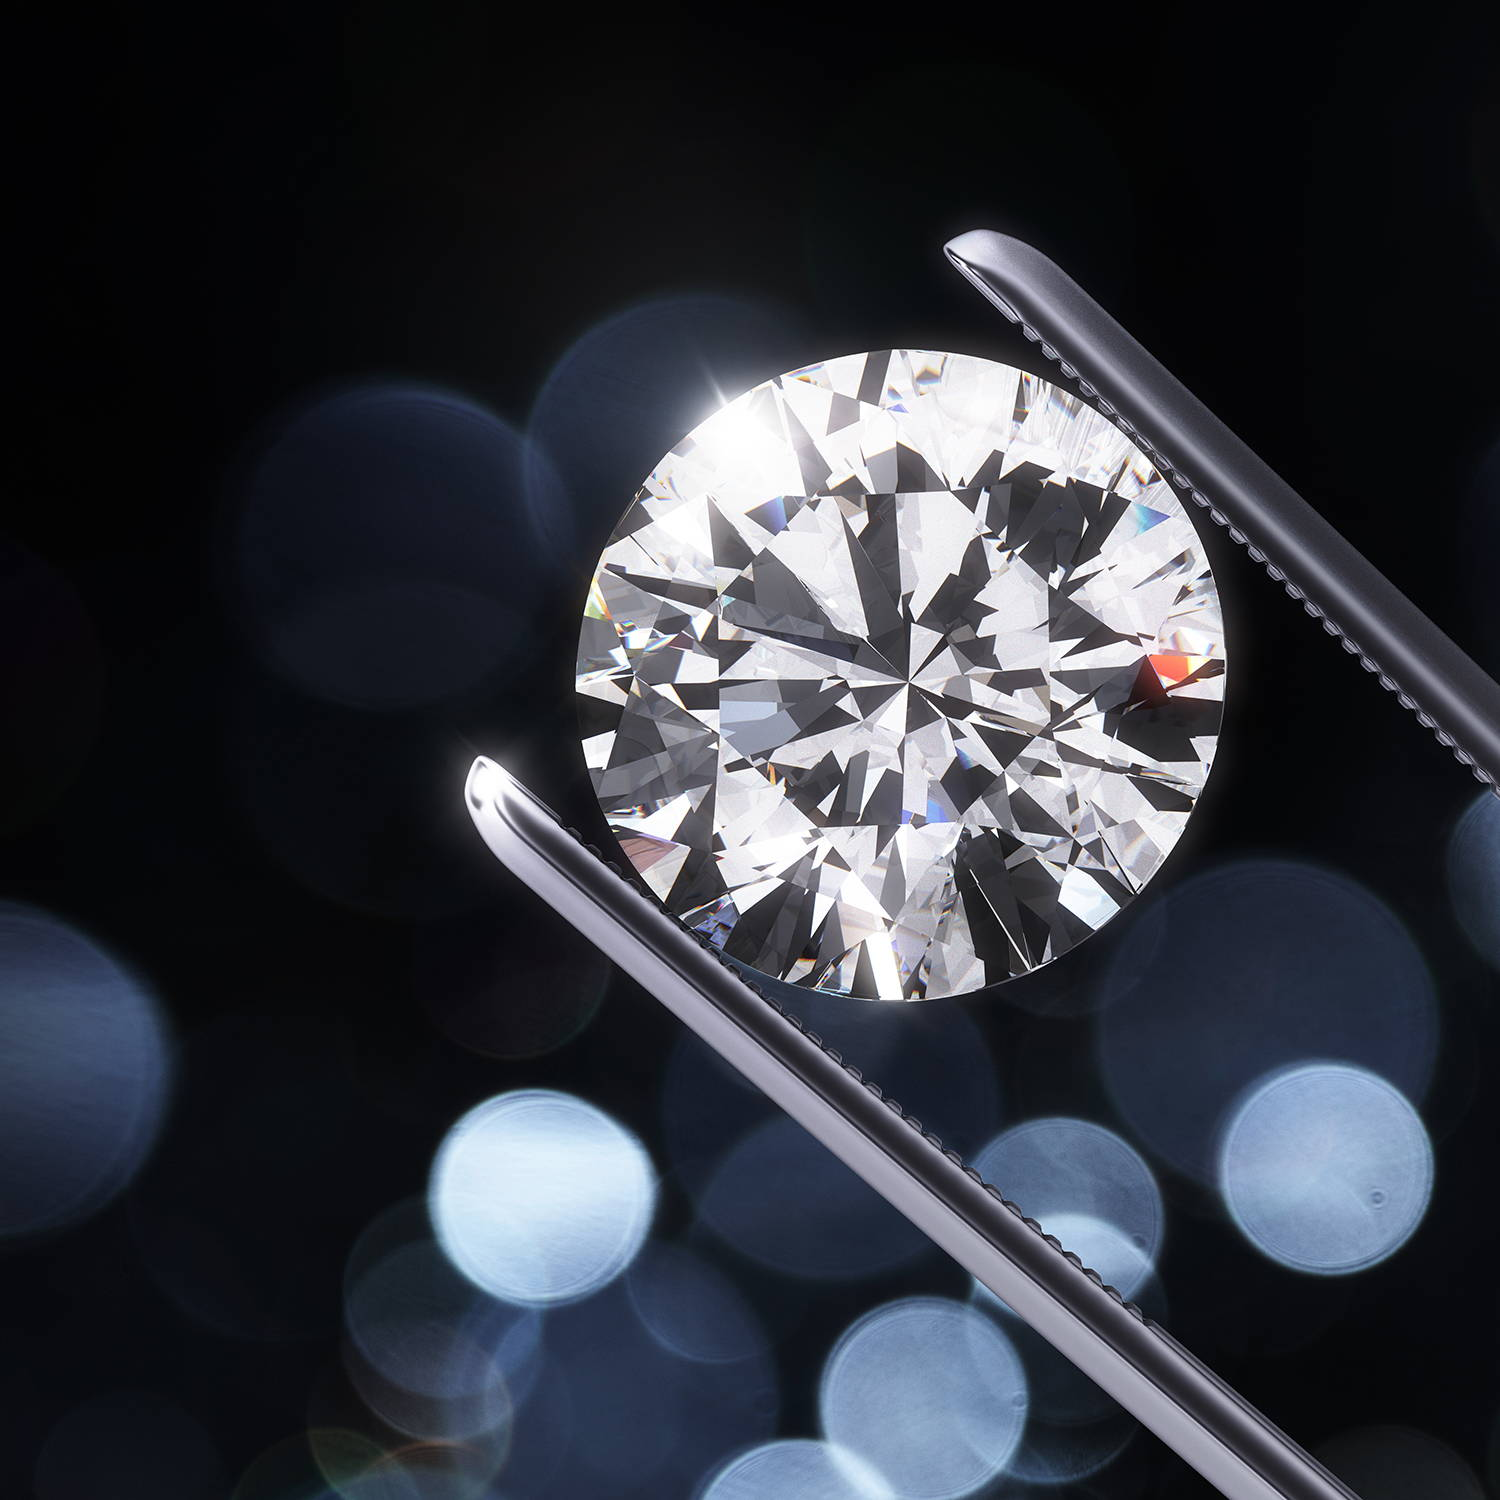 Shop for diamonds in Montreal. Shown here, a beautiful diamond with lots of sparkle help up to catch the light.